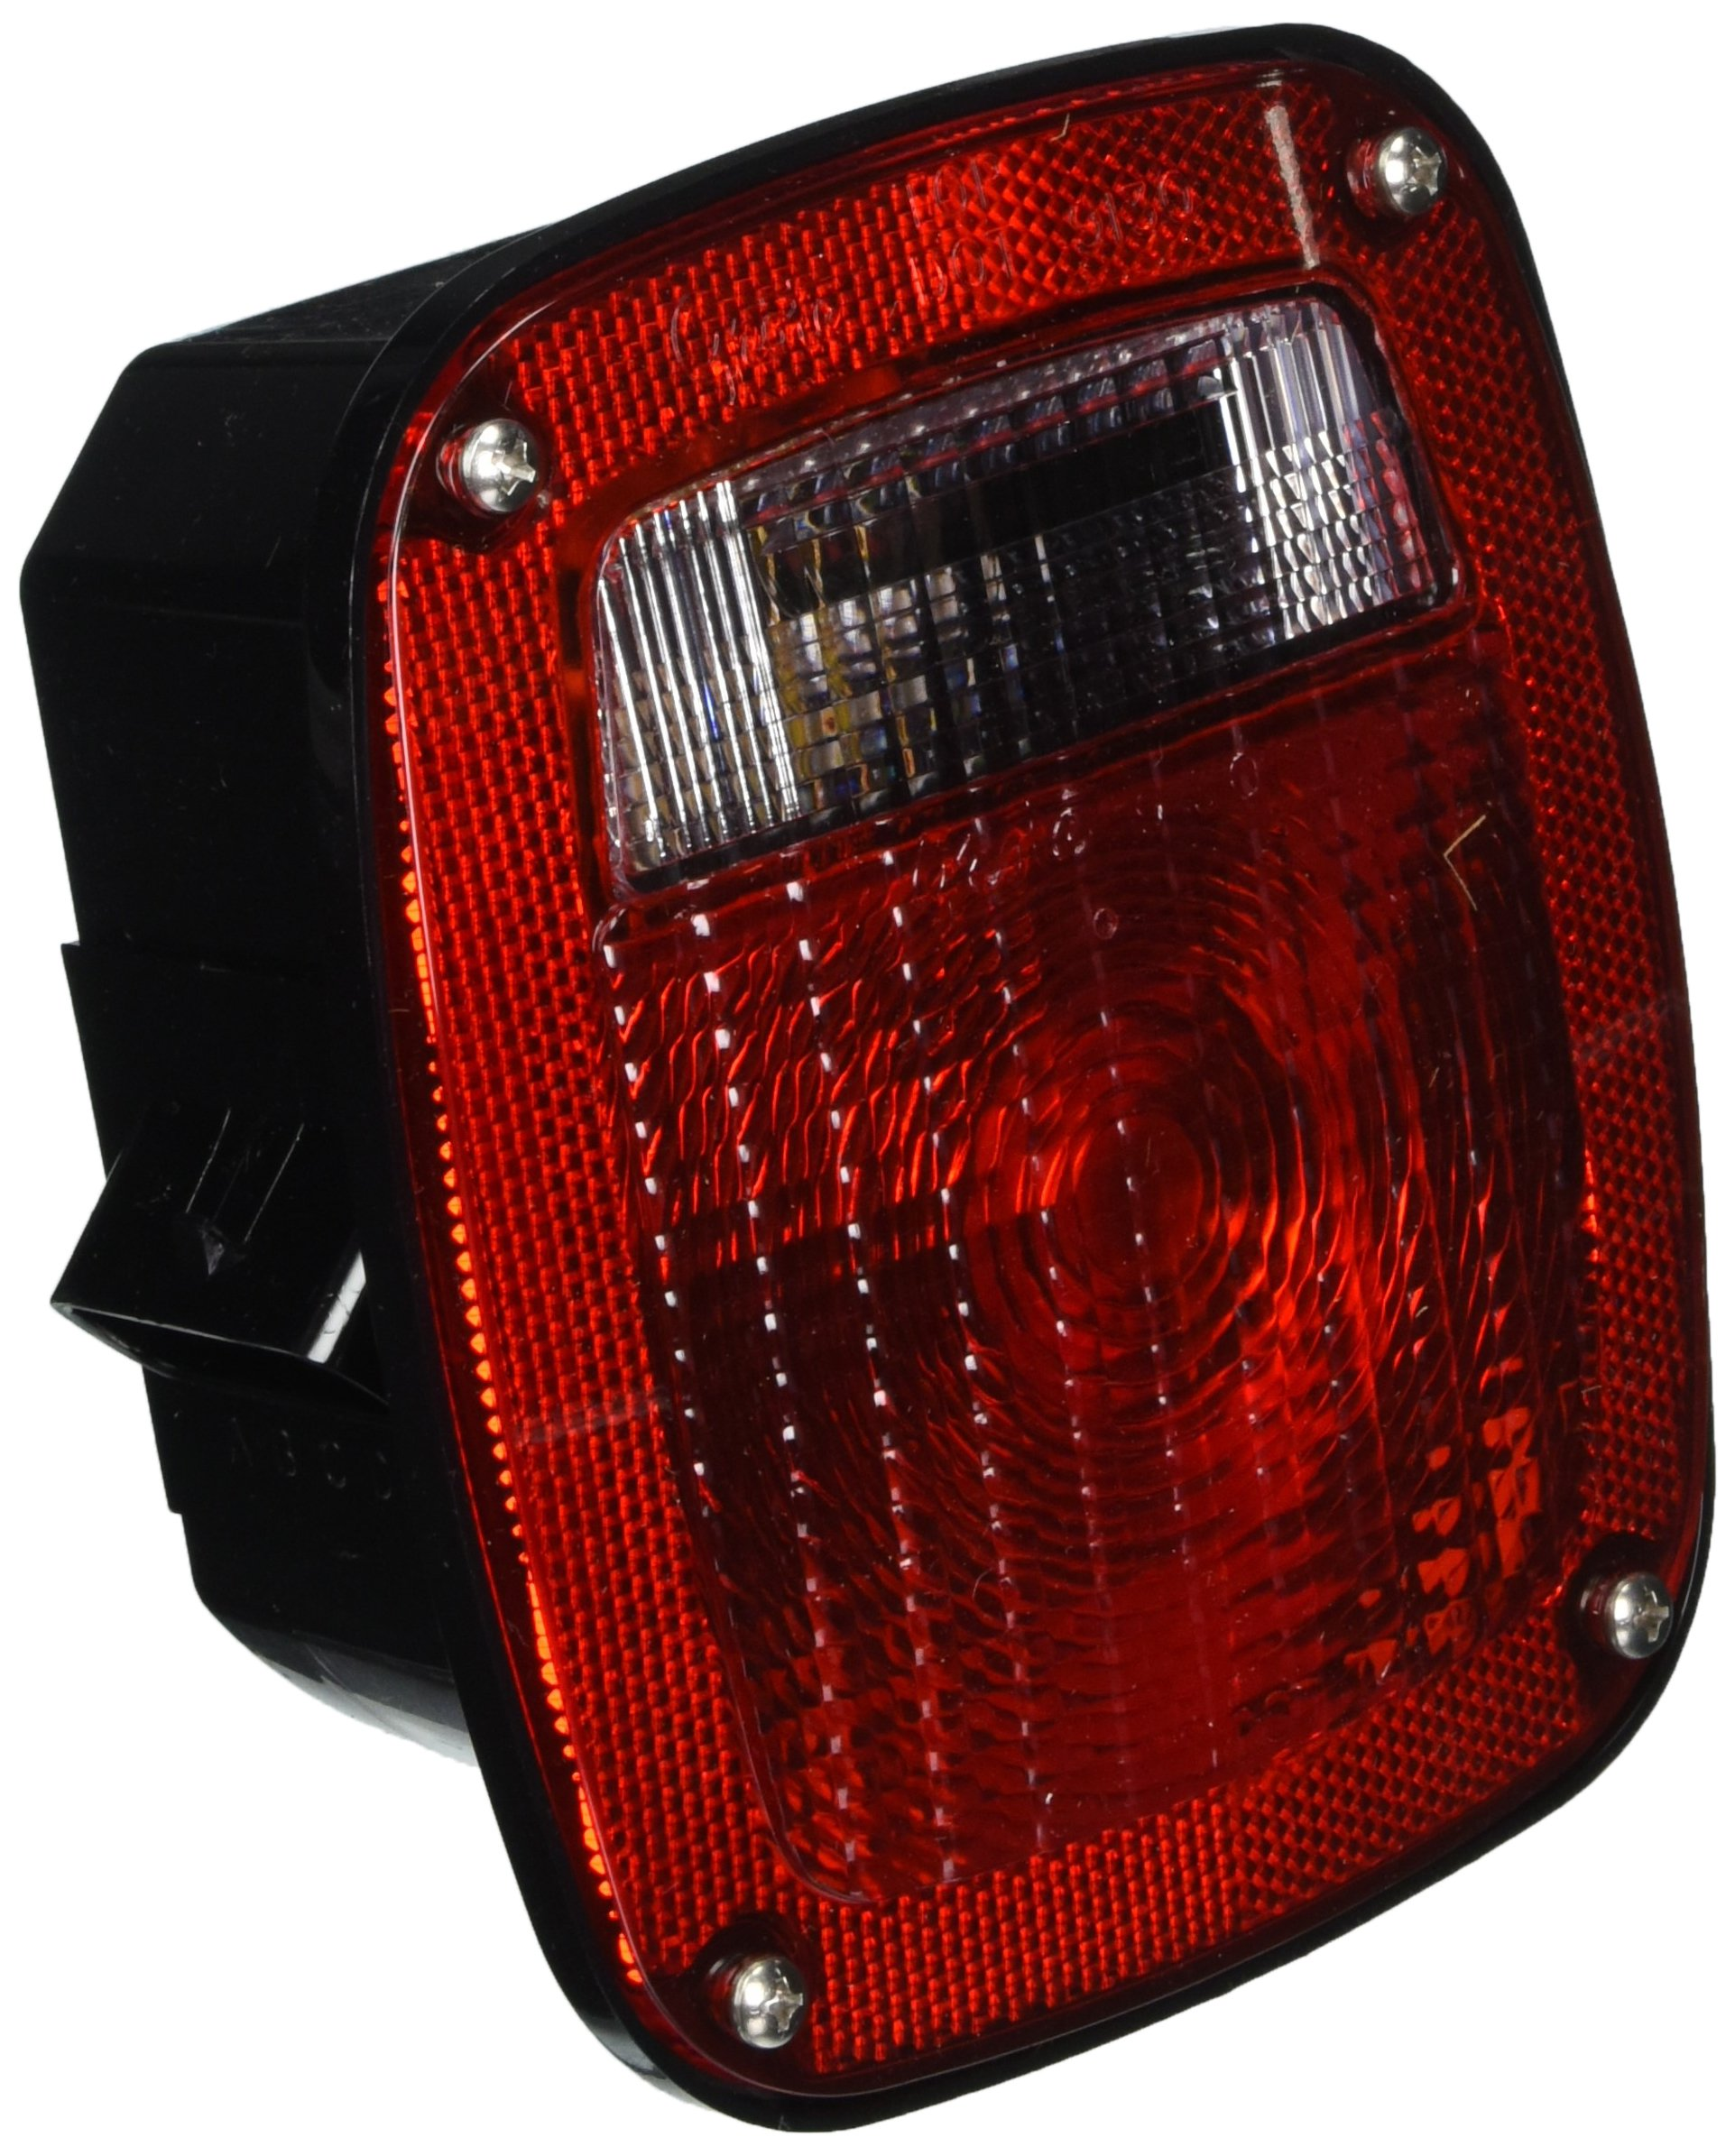 Grote 53650 SuperNova Three-Stud Metri-Pack LED Stop Tail Turn Light with Double Connector (w/ License Lamp) by Grote